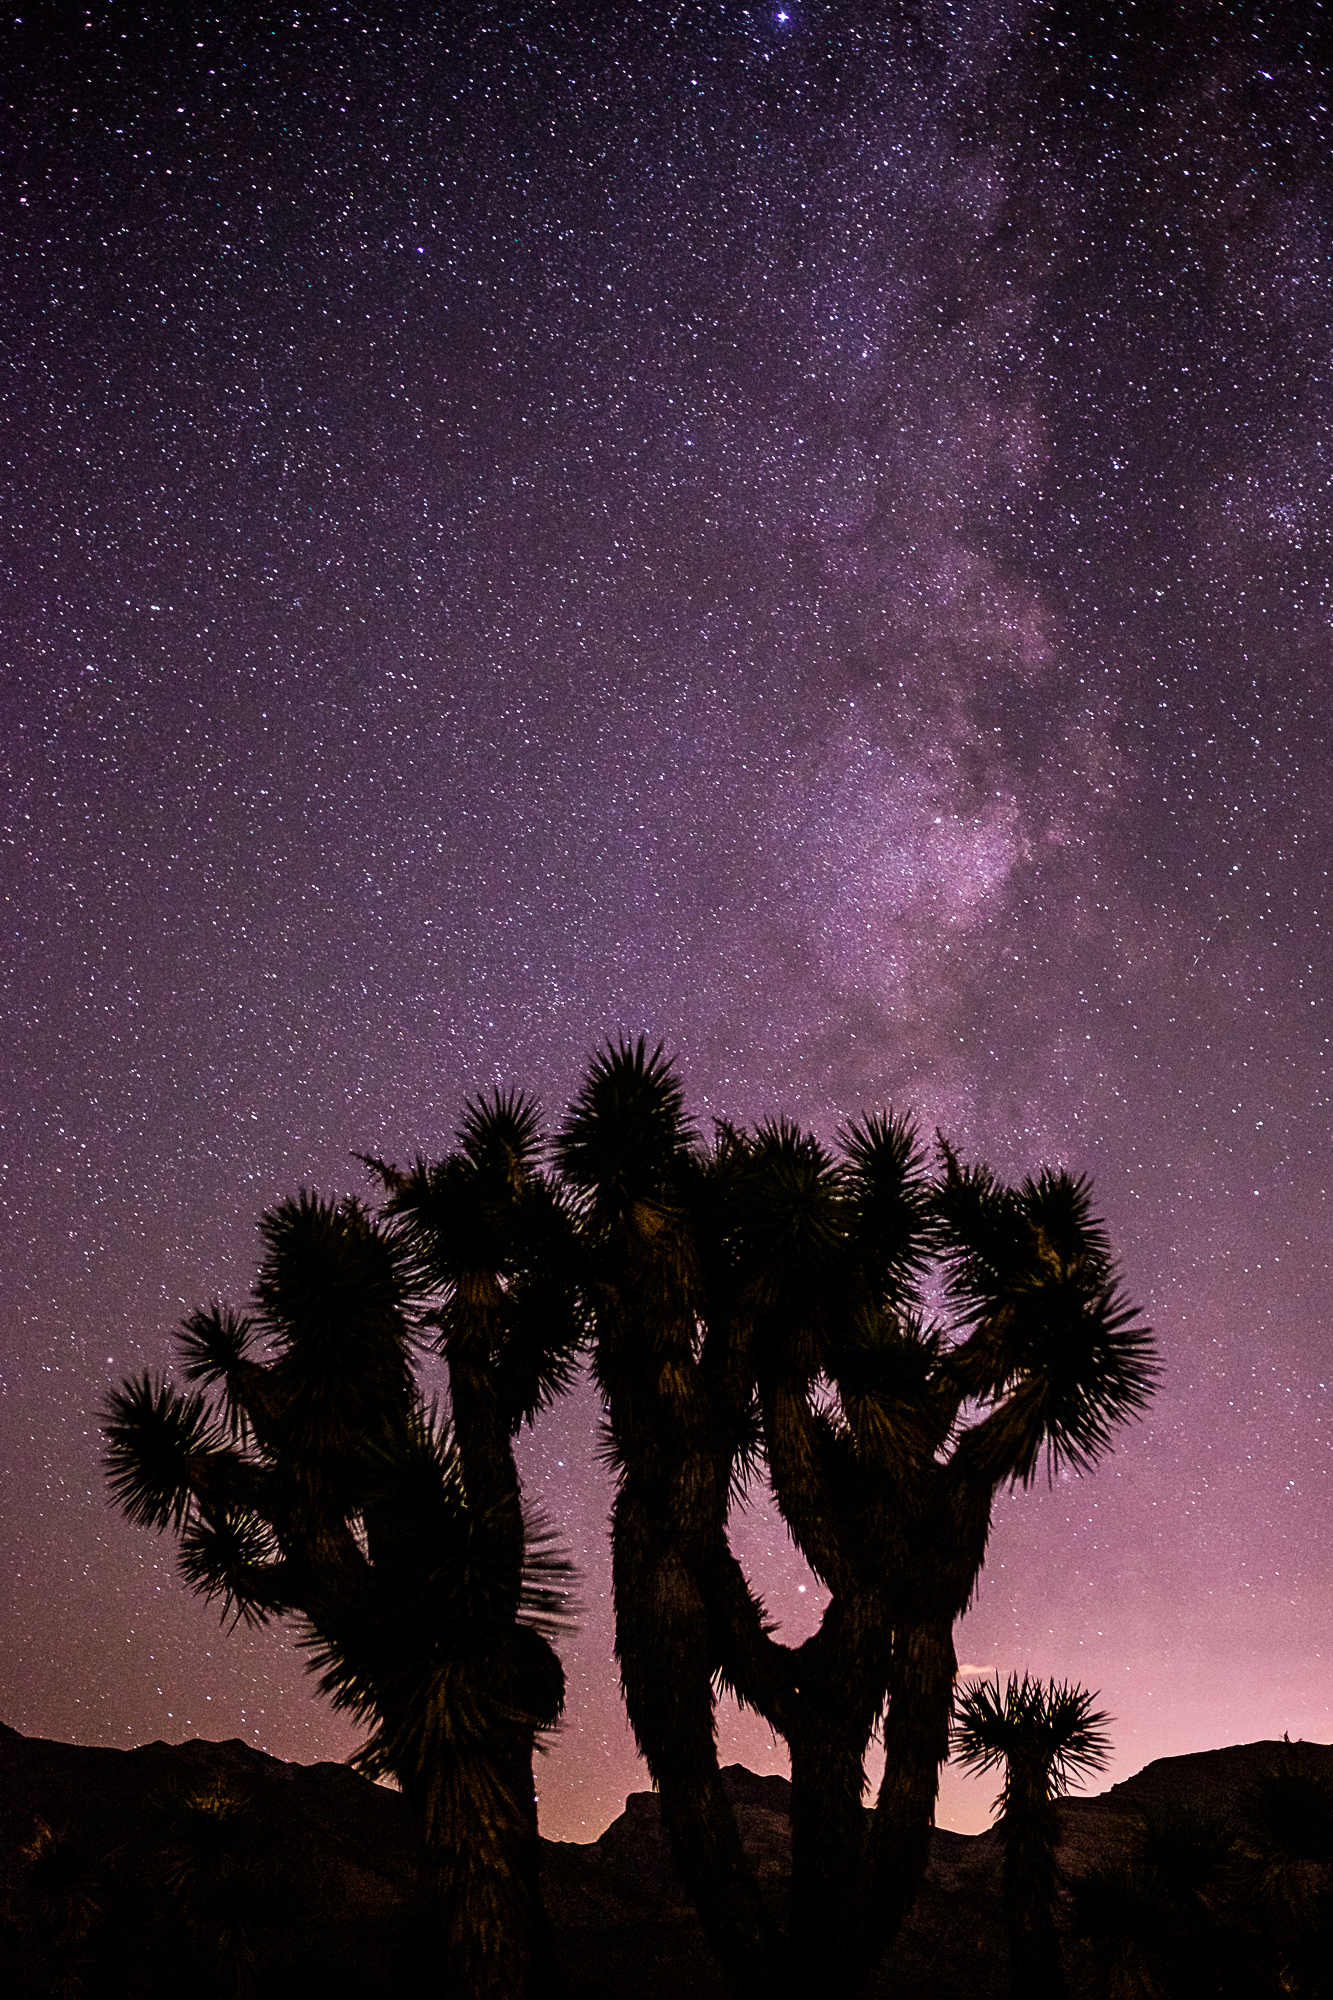 Joshua Tree and the Milky Way, Virgin River Gorge